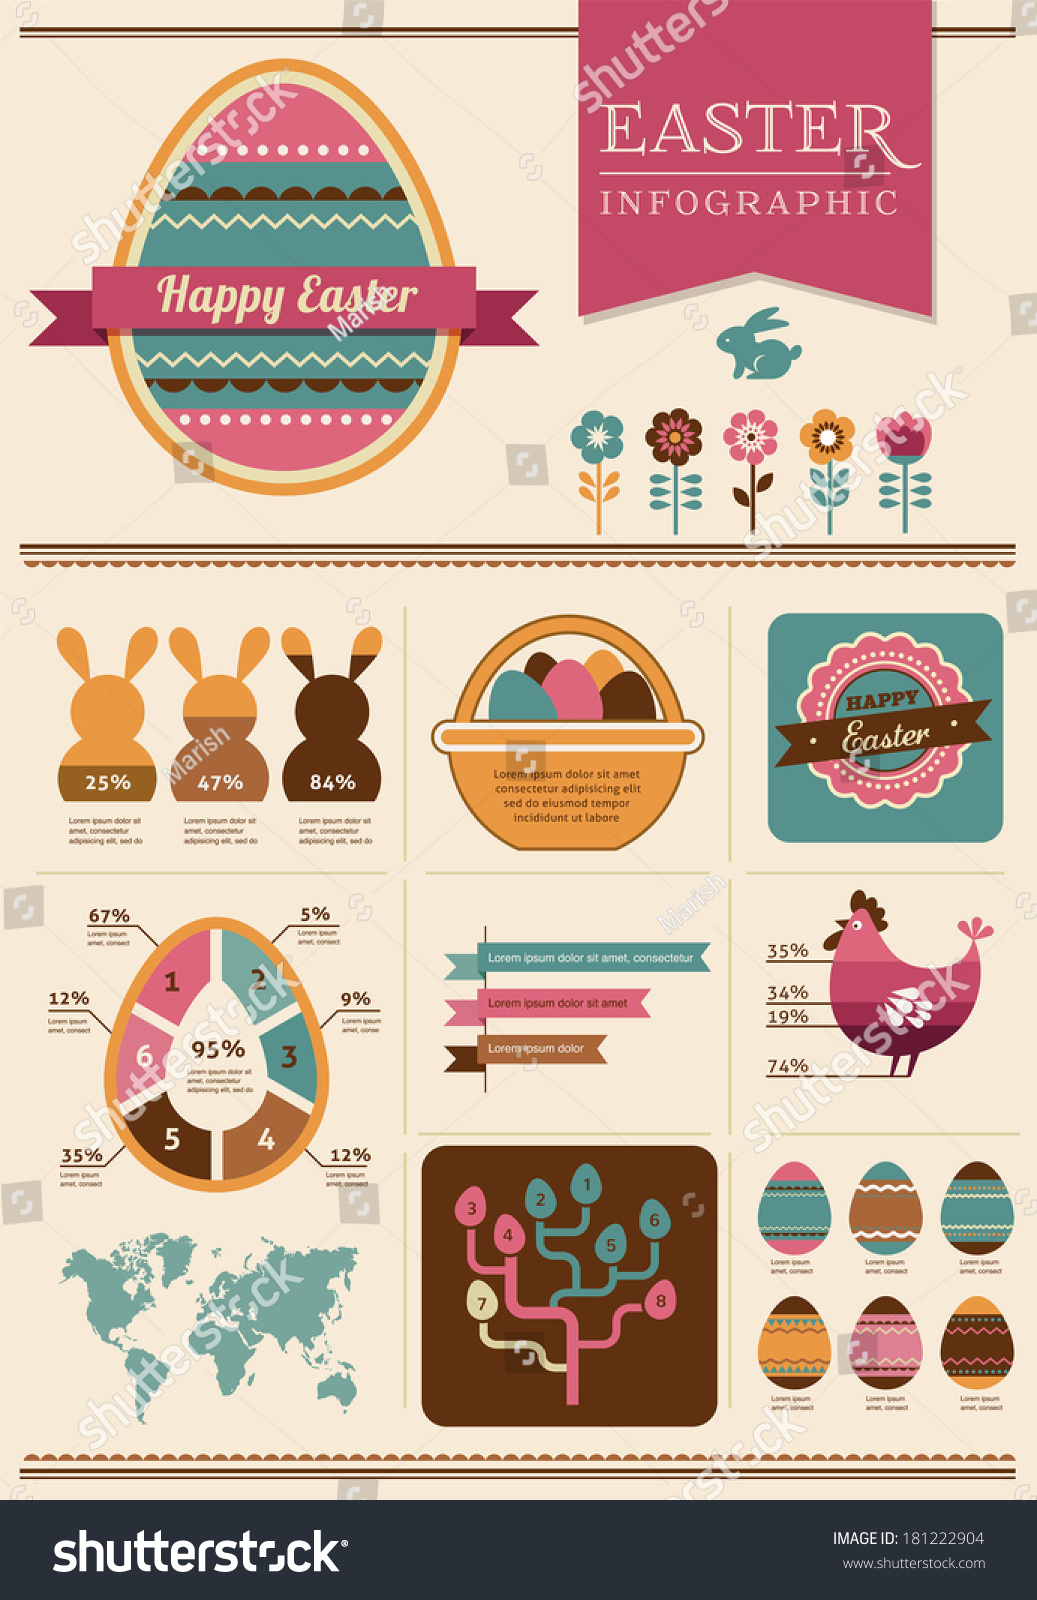 Happy Easter Infographic Elements Stock Vector 181222904. Telecom Expense Management Solutions. American Partners Credit Union. Estate Planning Attorney Columbus Ohio. Oatmeal Health Benefits Google Apps Inventory. Hydrogen Peroxide As Mouthwash. Greenville Auto Insurance Videos On Marketing. Florida State University In Jacksonville Fl. Troubled Teen Programs Sell Your Stock Photos